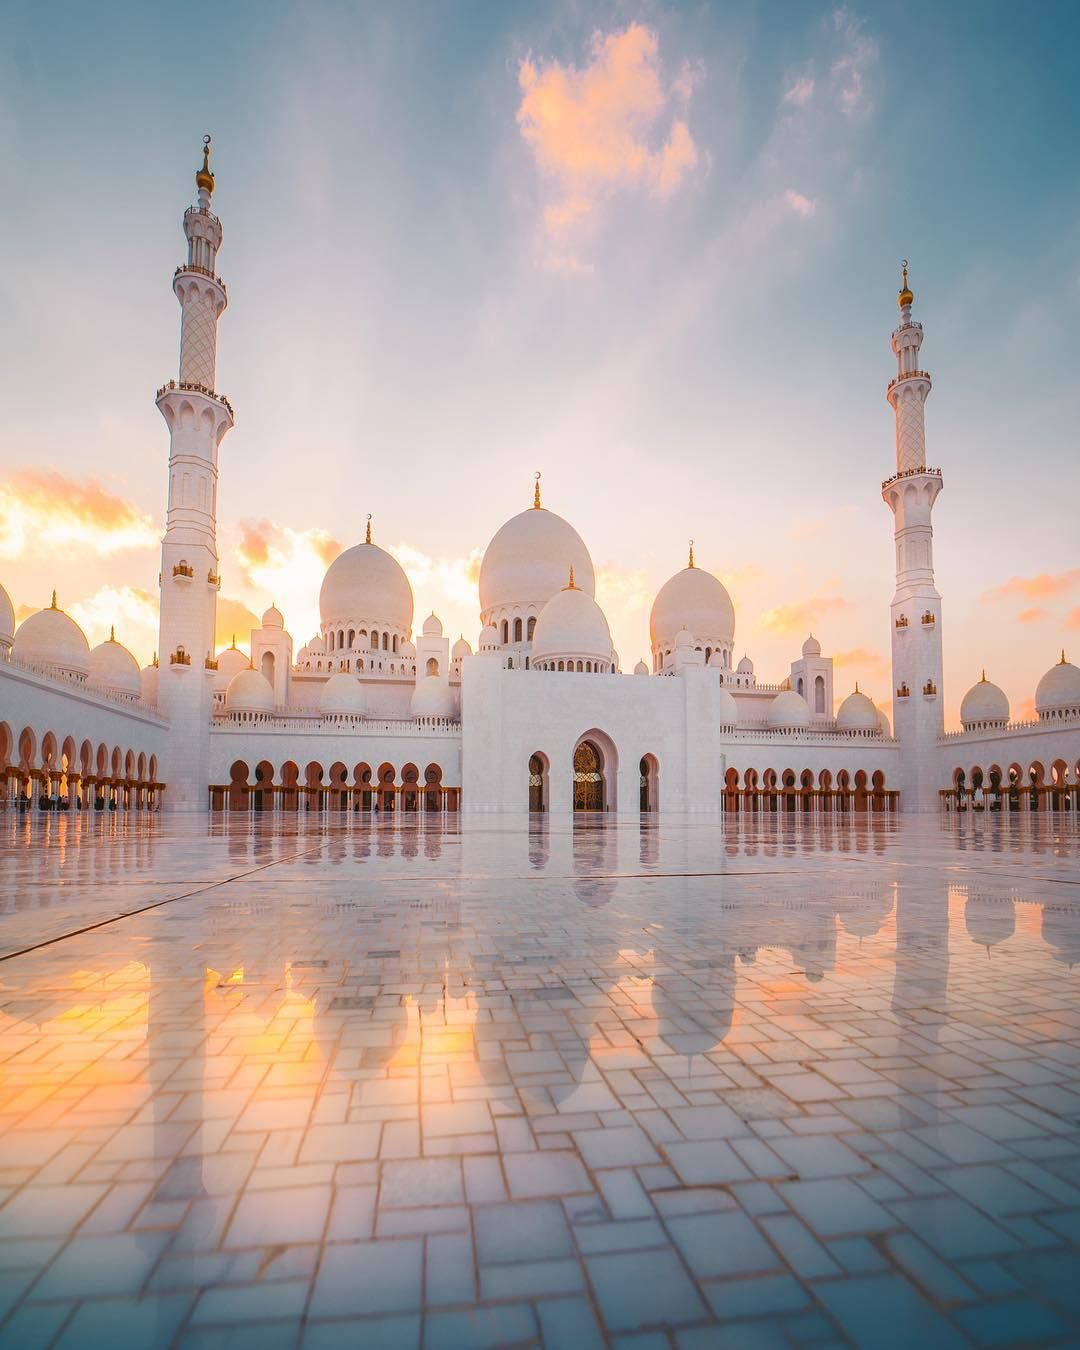 """EMMETT SPARLING on Instagram: """"We just watched a stunning sunset over the grand mosque here in Abu Dhabi. The floor was so shiny it looked like a layer of water over the…"""""""